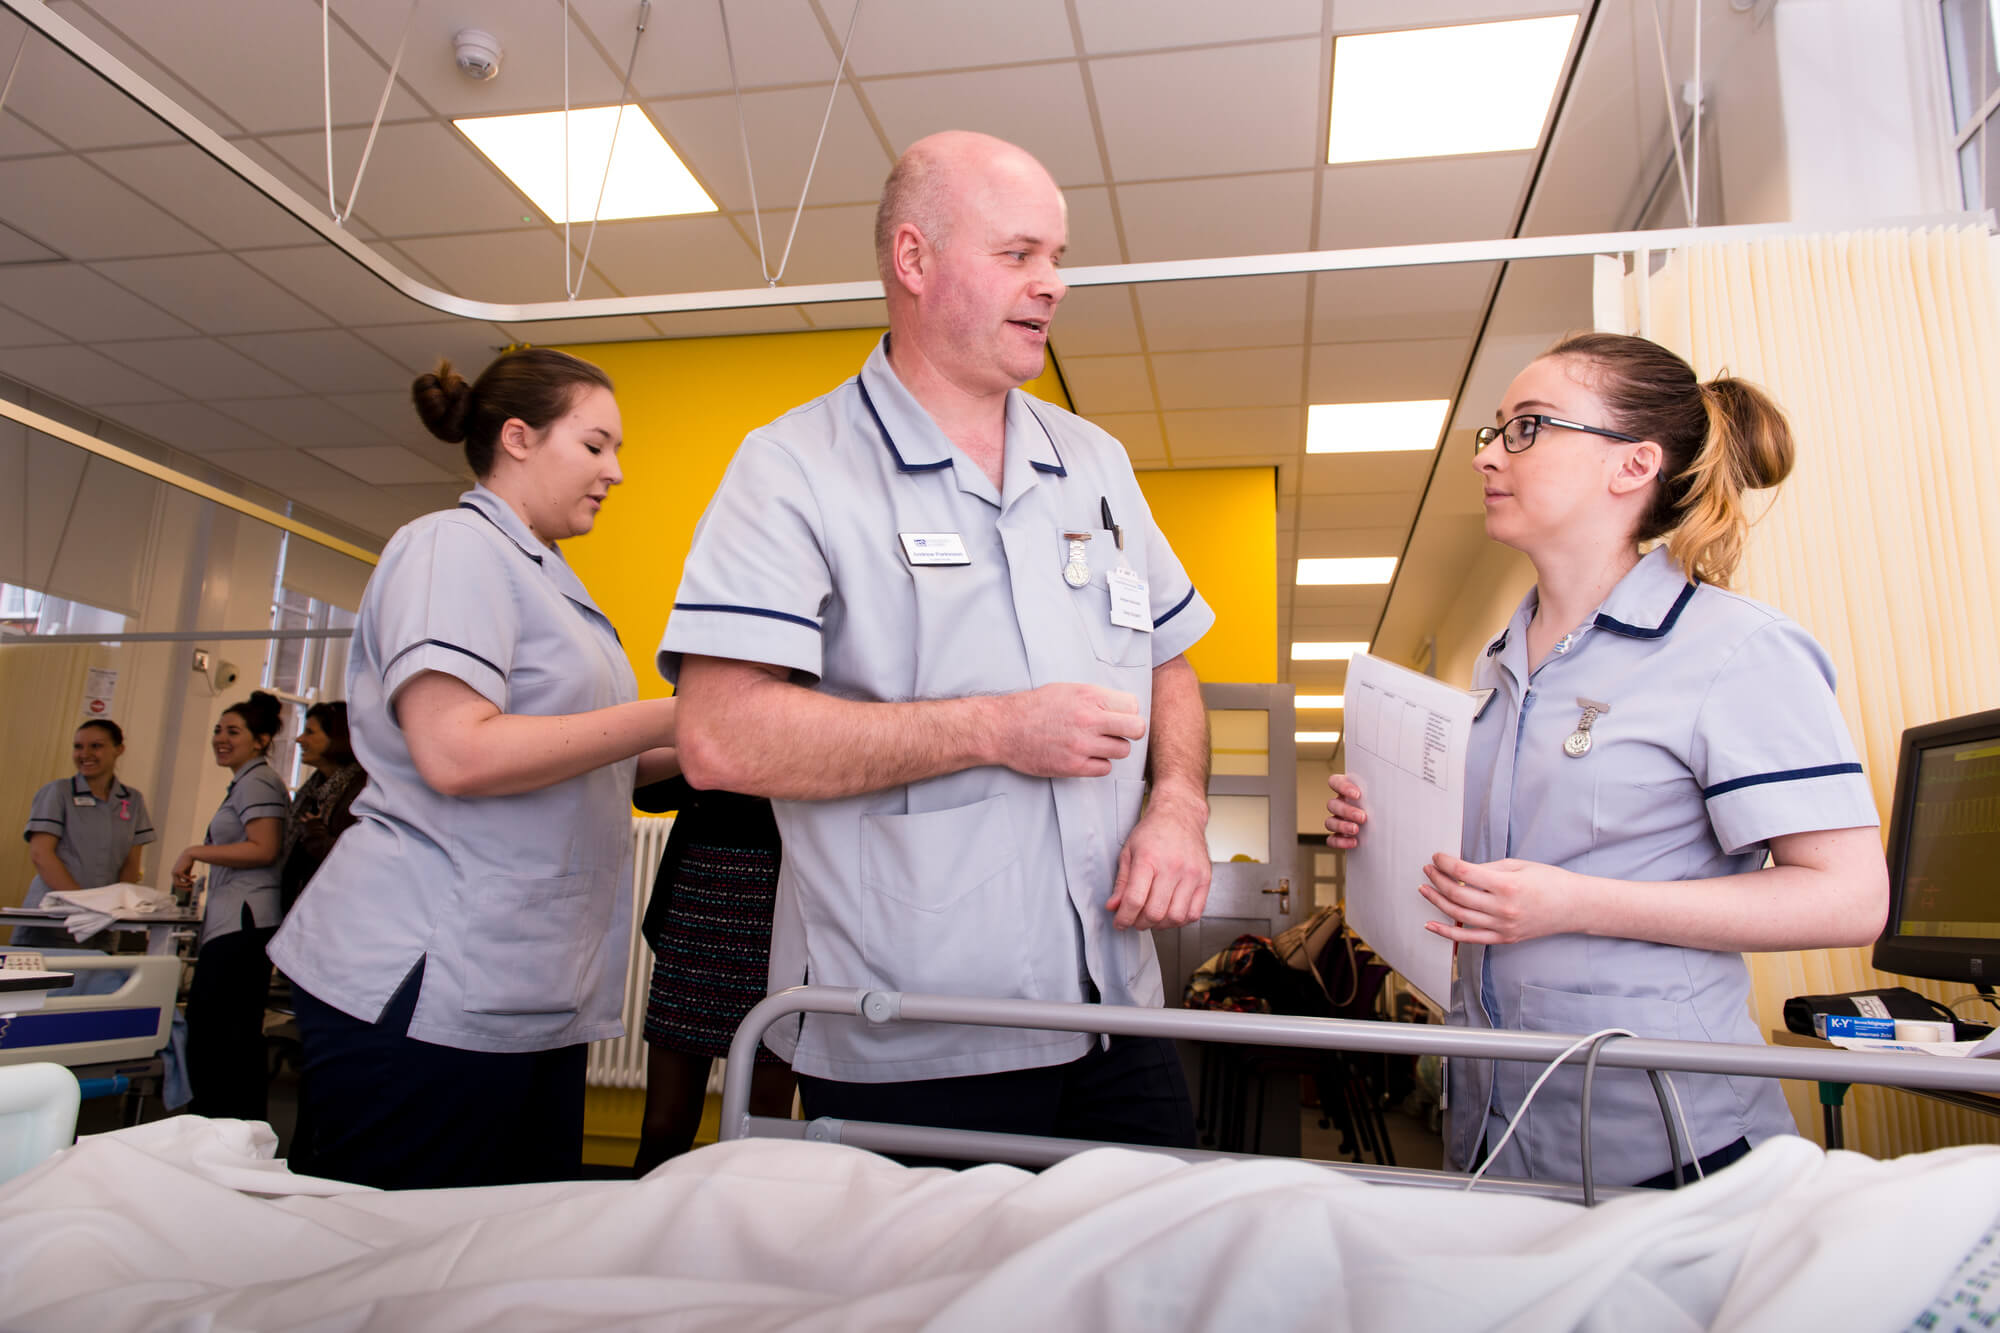 The clinical skills suite in Chesterfield